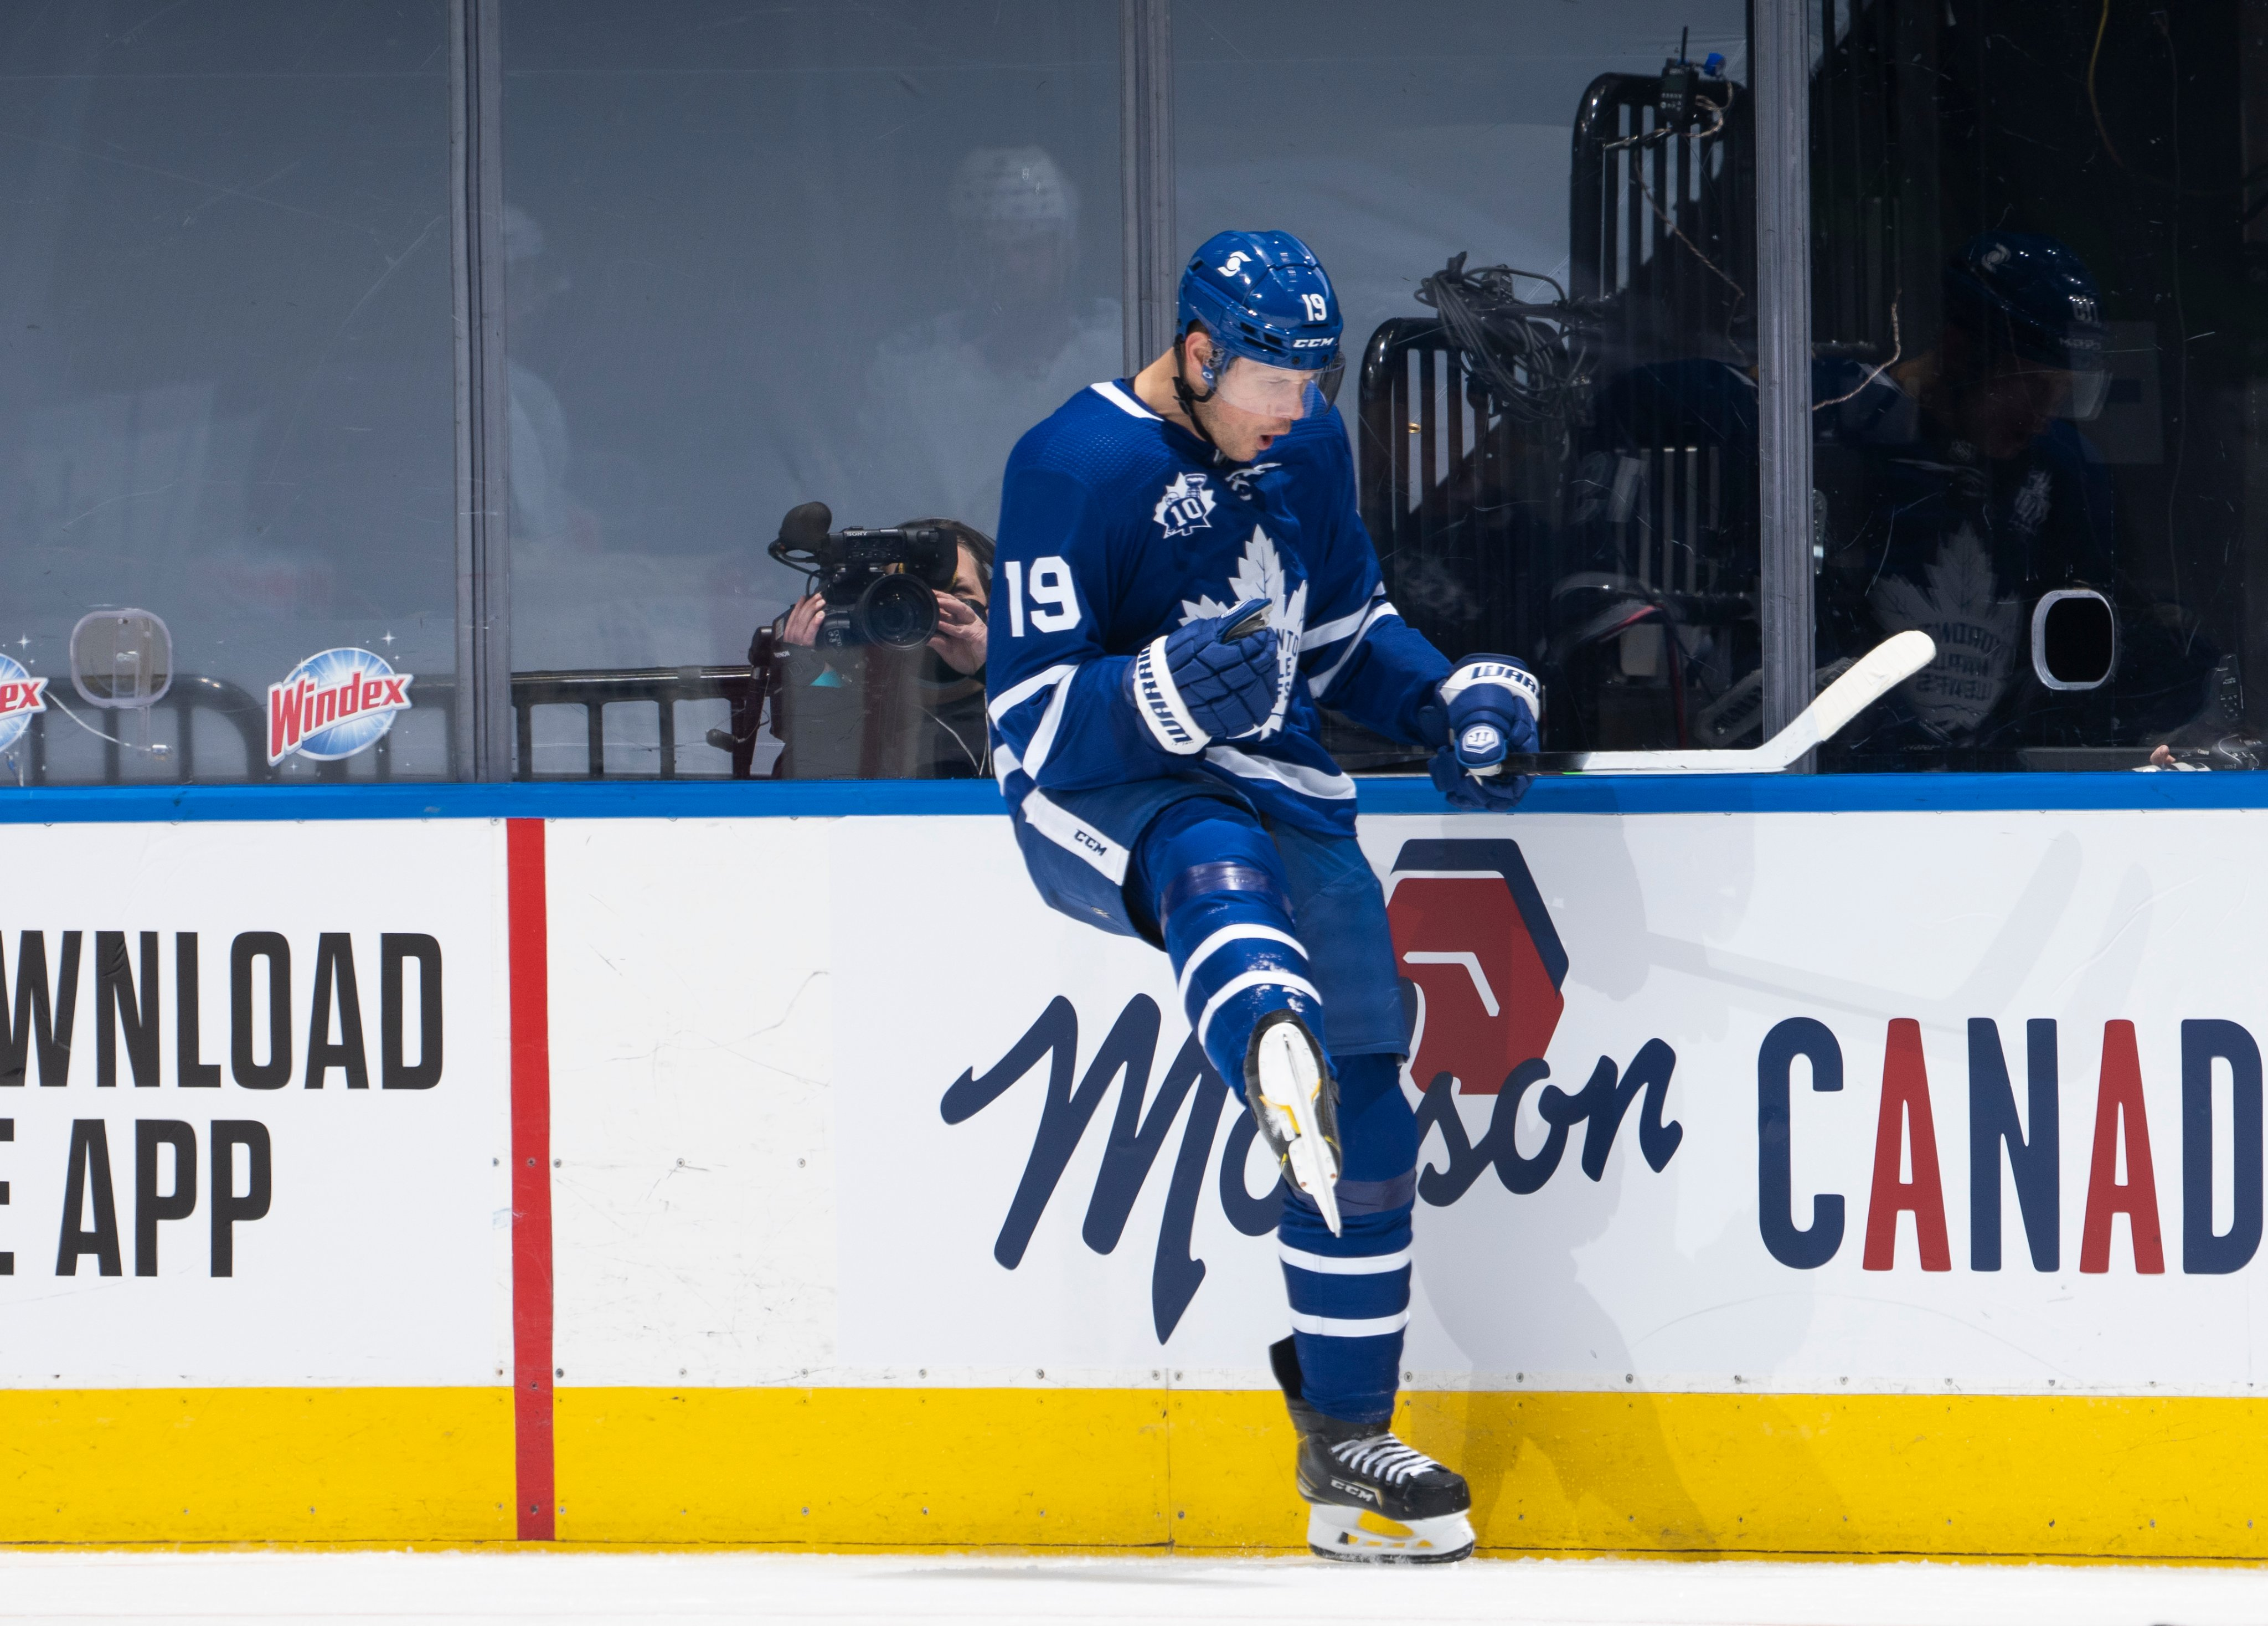 Postgame: Spezza scores hat trick, Leafs score 7 in blowout against Canucks